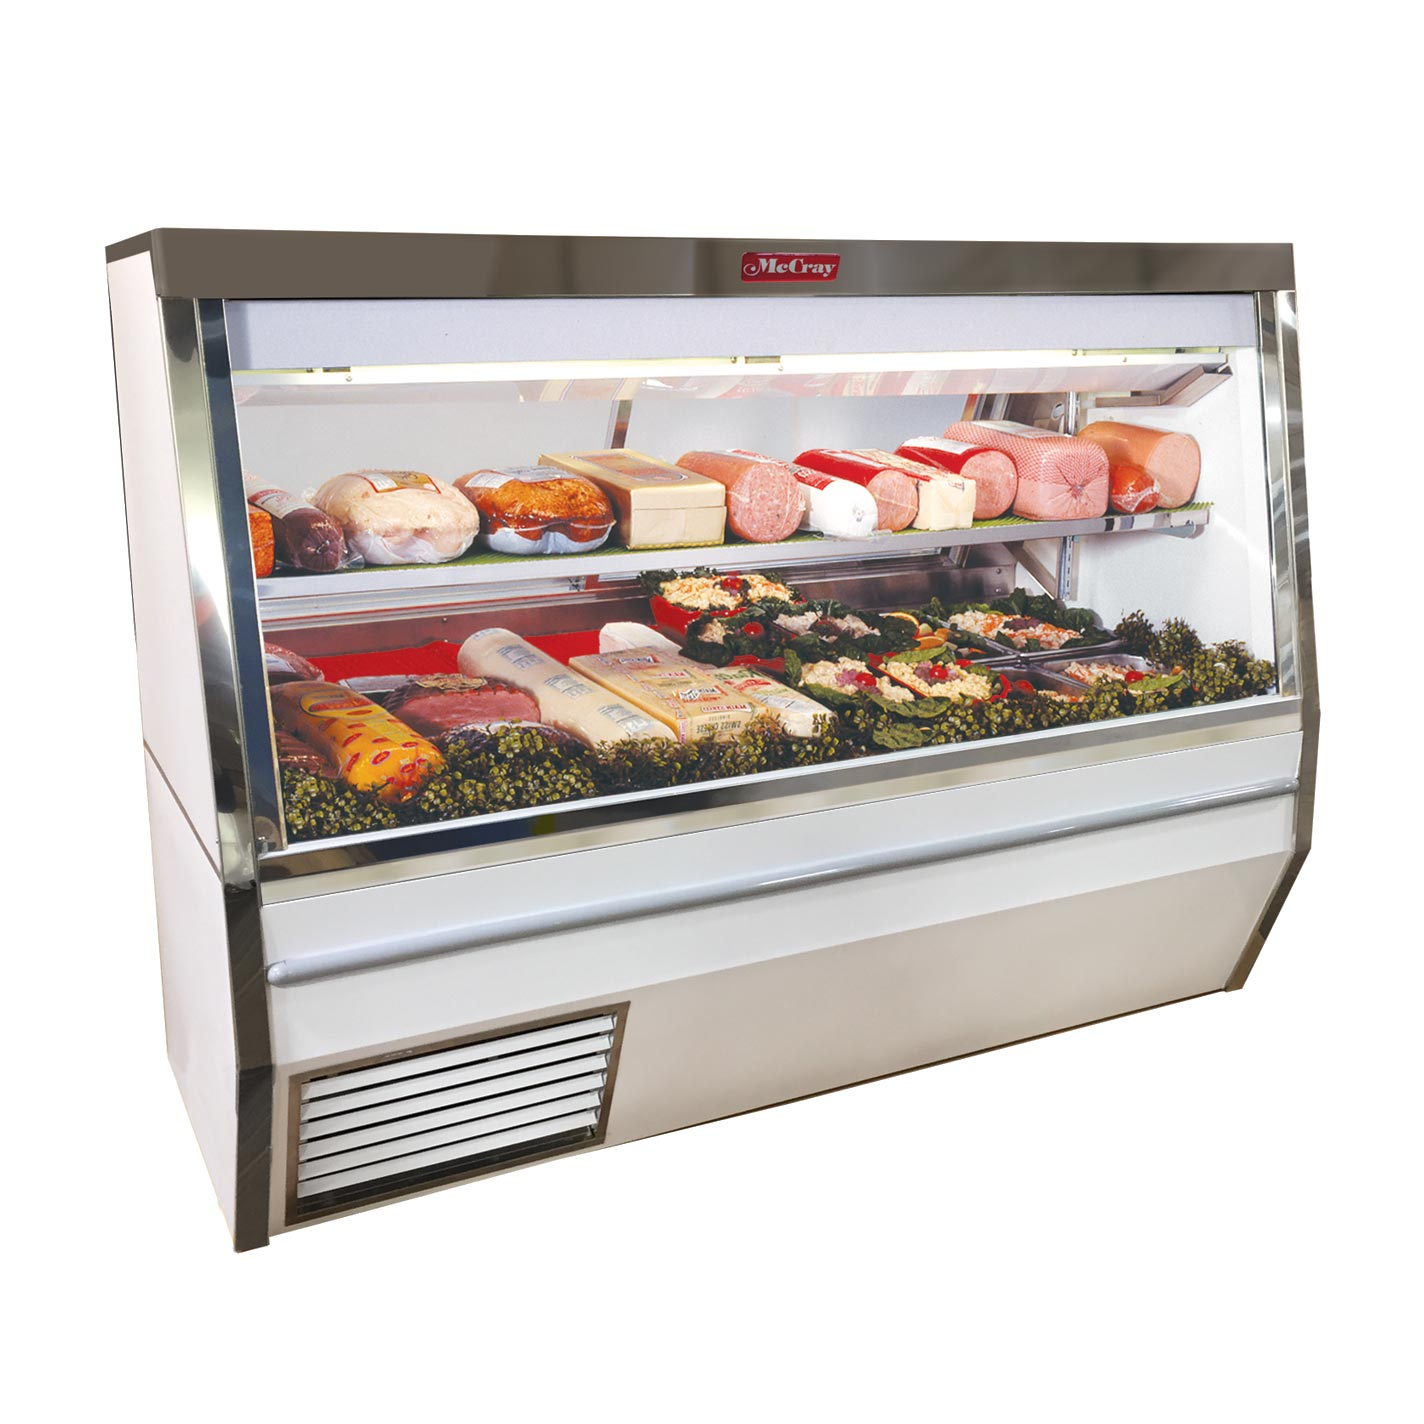 Howard-McCray R-CDS34N-10-LED display case, refrigerated deli